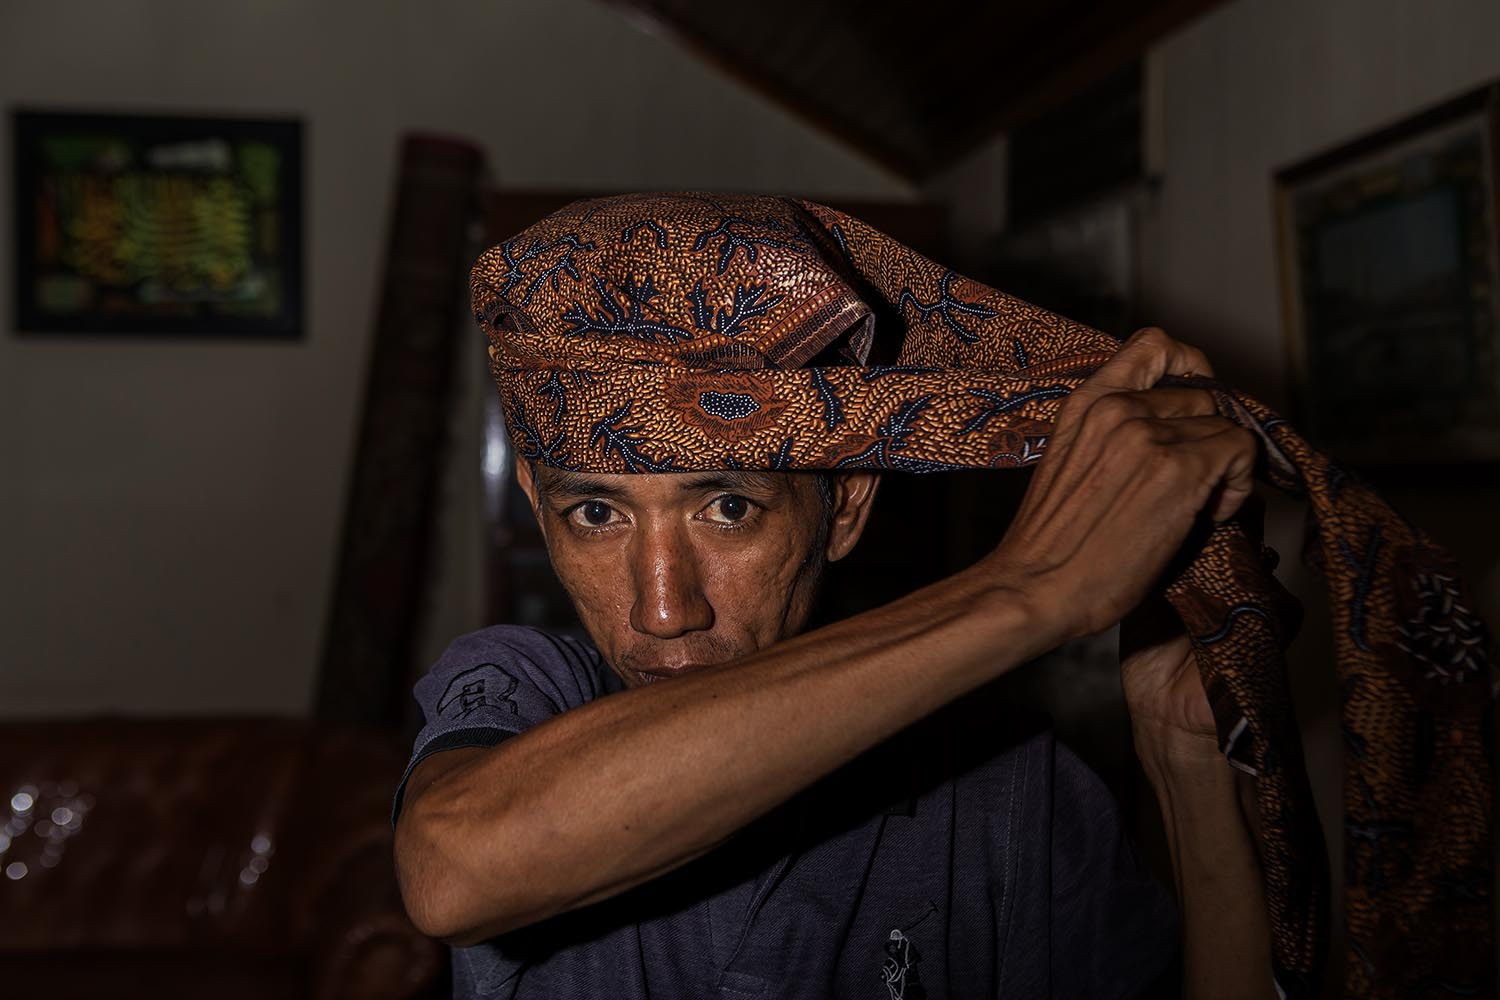 A student puts on a deta (headband). It is considered a must and a form of respect during practice in the evenings. JP/Ramadhani